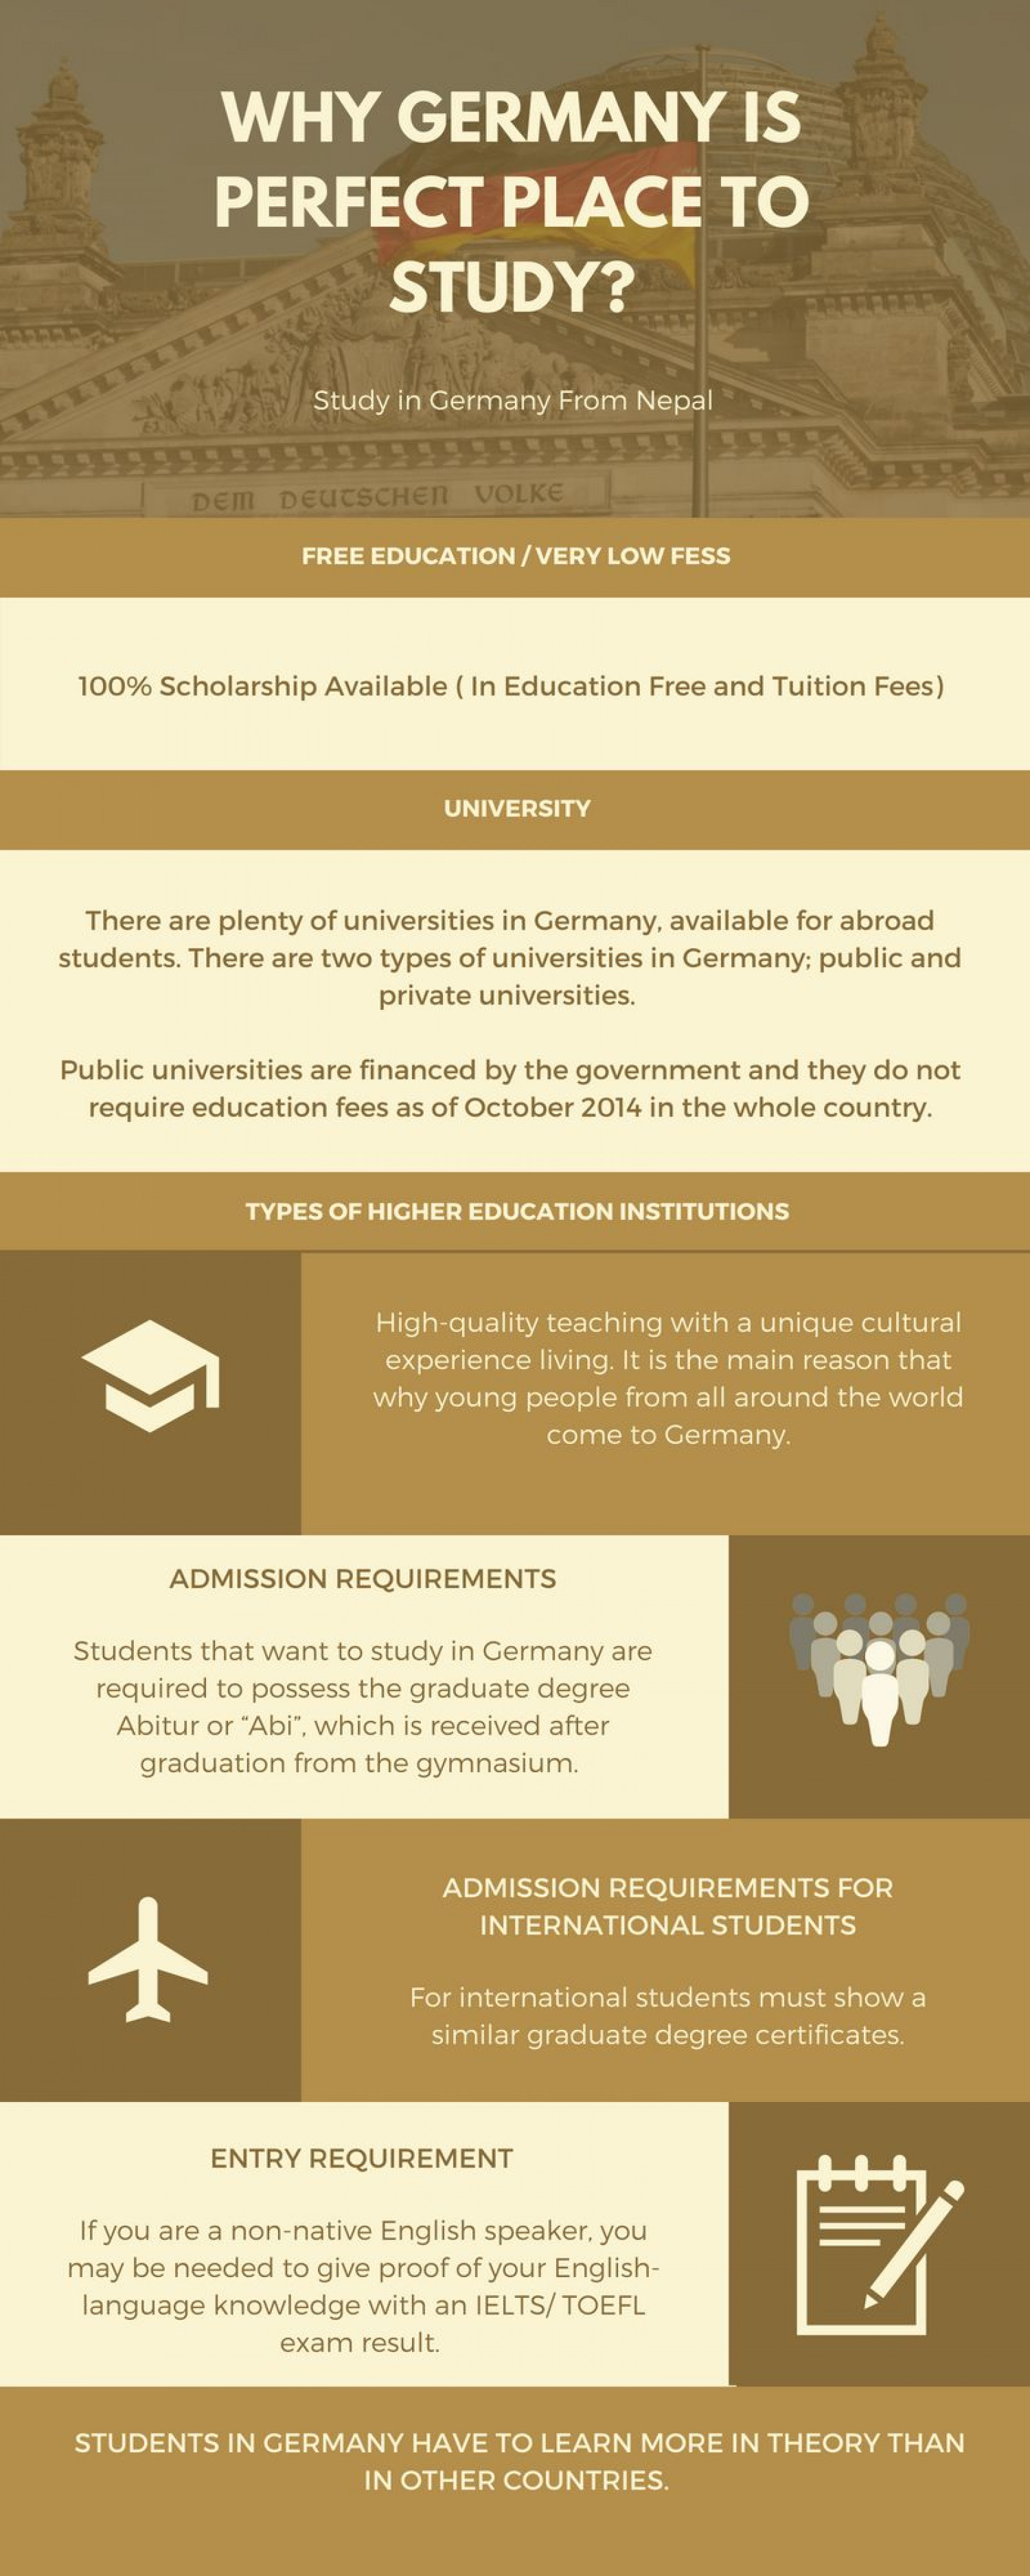 Why Germany is Perfect Place to Study Infographic